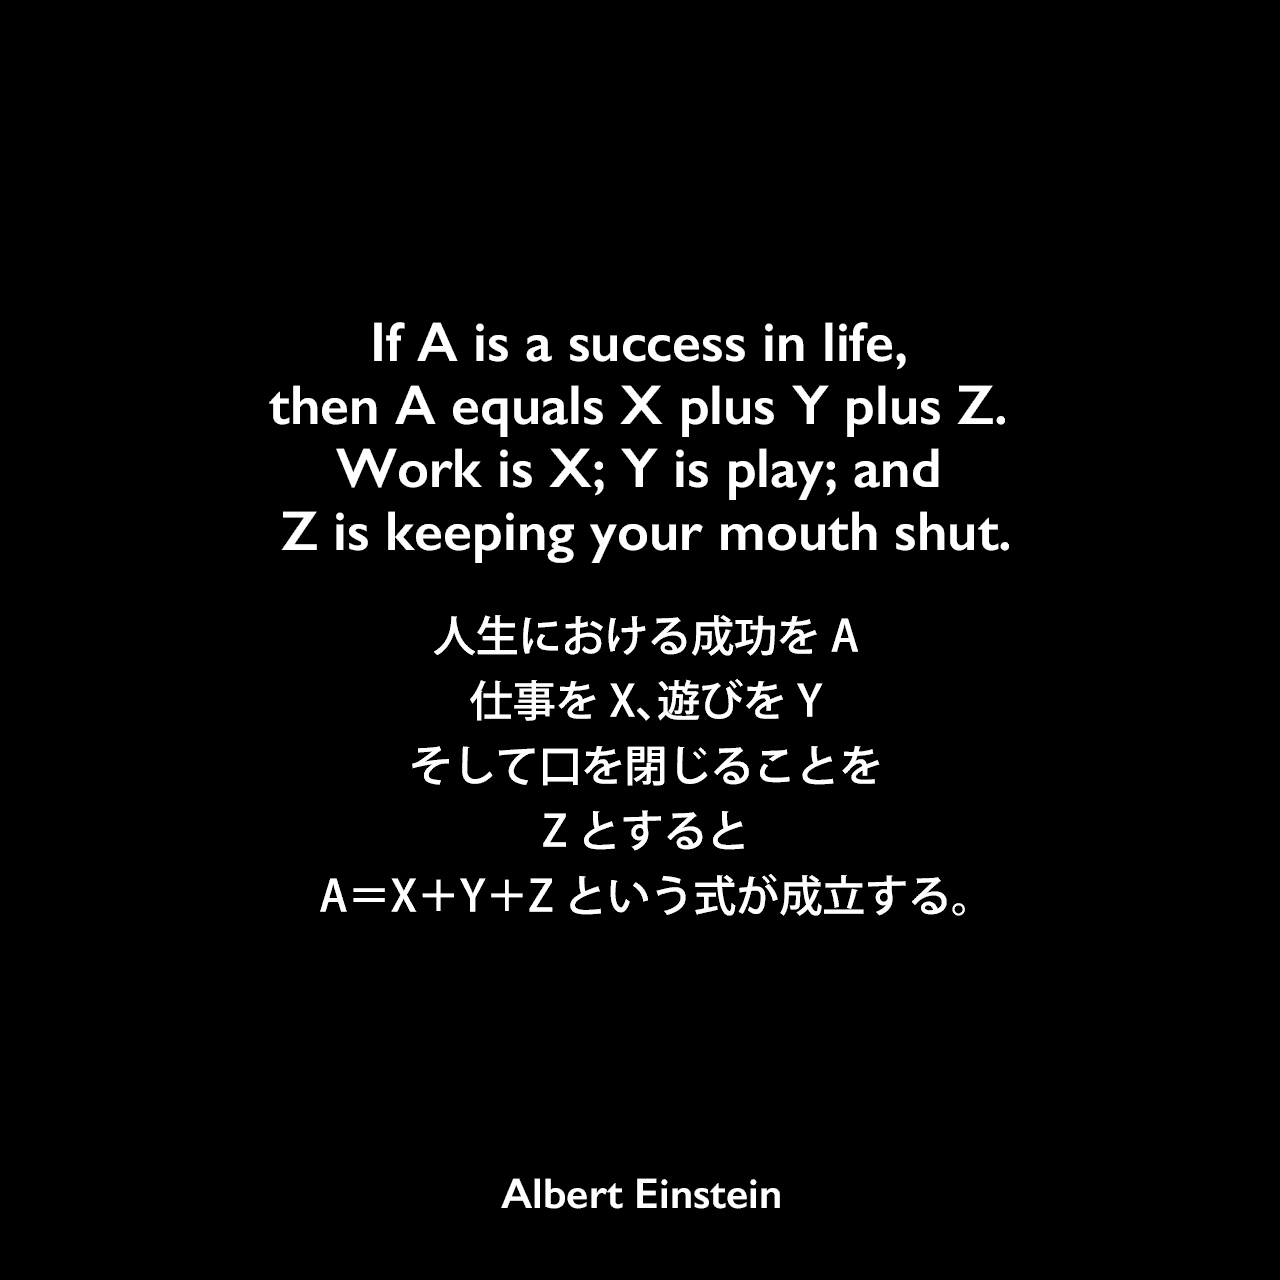 If A is a success in life, then A equals X plus Y plus Z. Work is X; Y is play; and Z is keeping your mouth shut.人生における成功をA、仕事をX、遊びをY、そして口を閉じることをZとすると、A=X+Y+Zという式が成立する。- Alice Calaprice and Freeman Dysonによる本「The Ultimate Quotable Einstein」よりAlbert Einstein